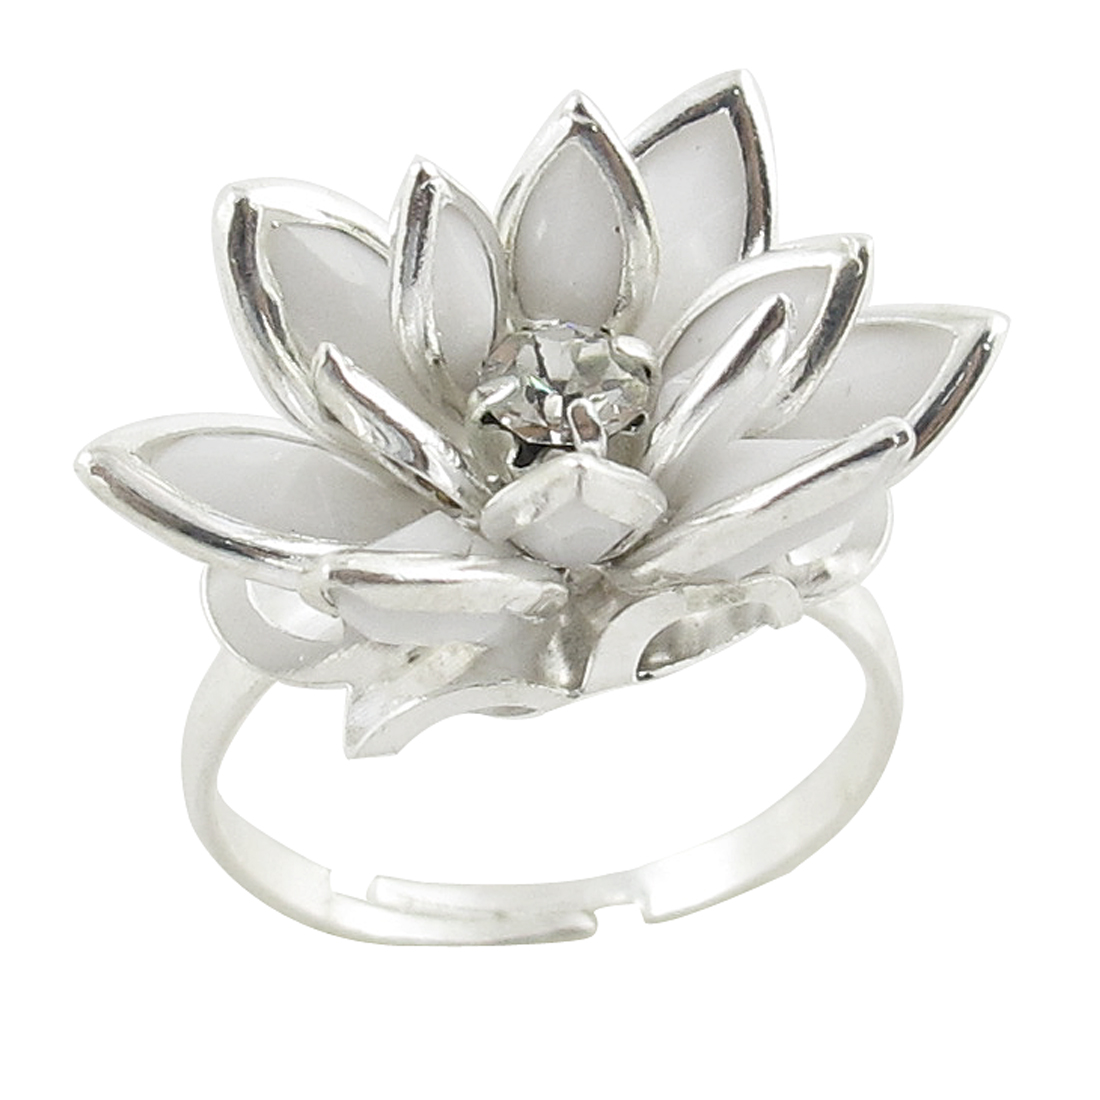 White Lotus Design Silver Tone Metal US 6 1/2 Finger Ring for Ladies